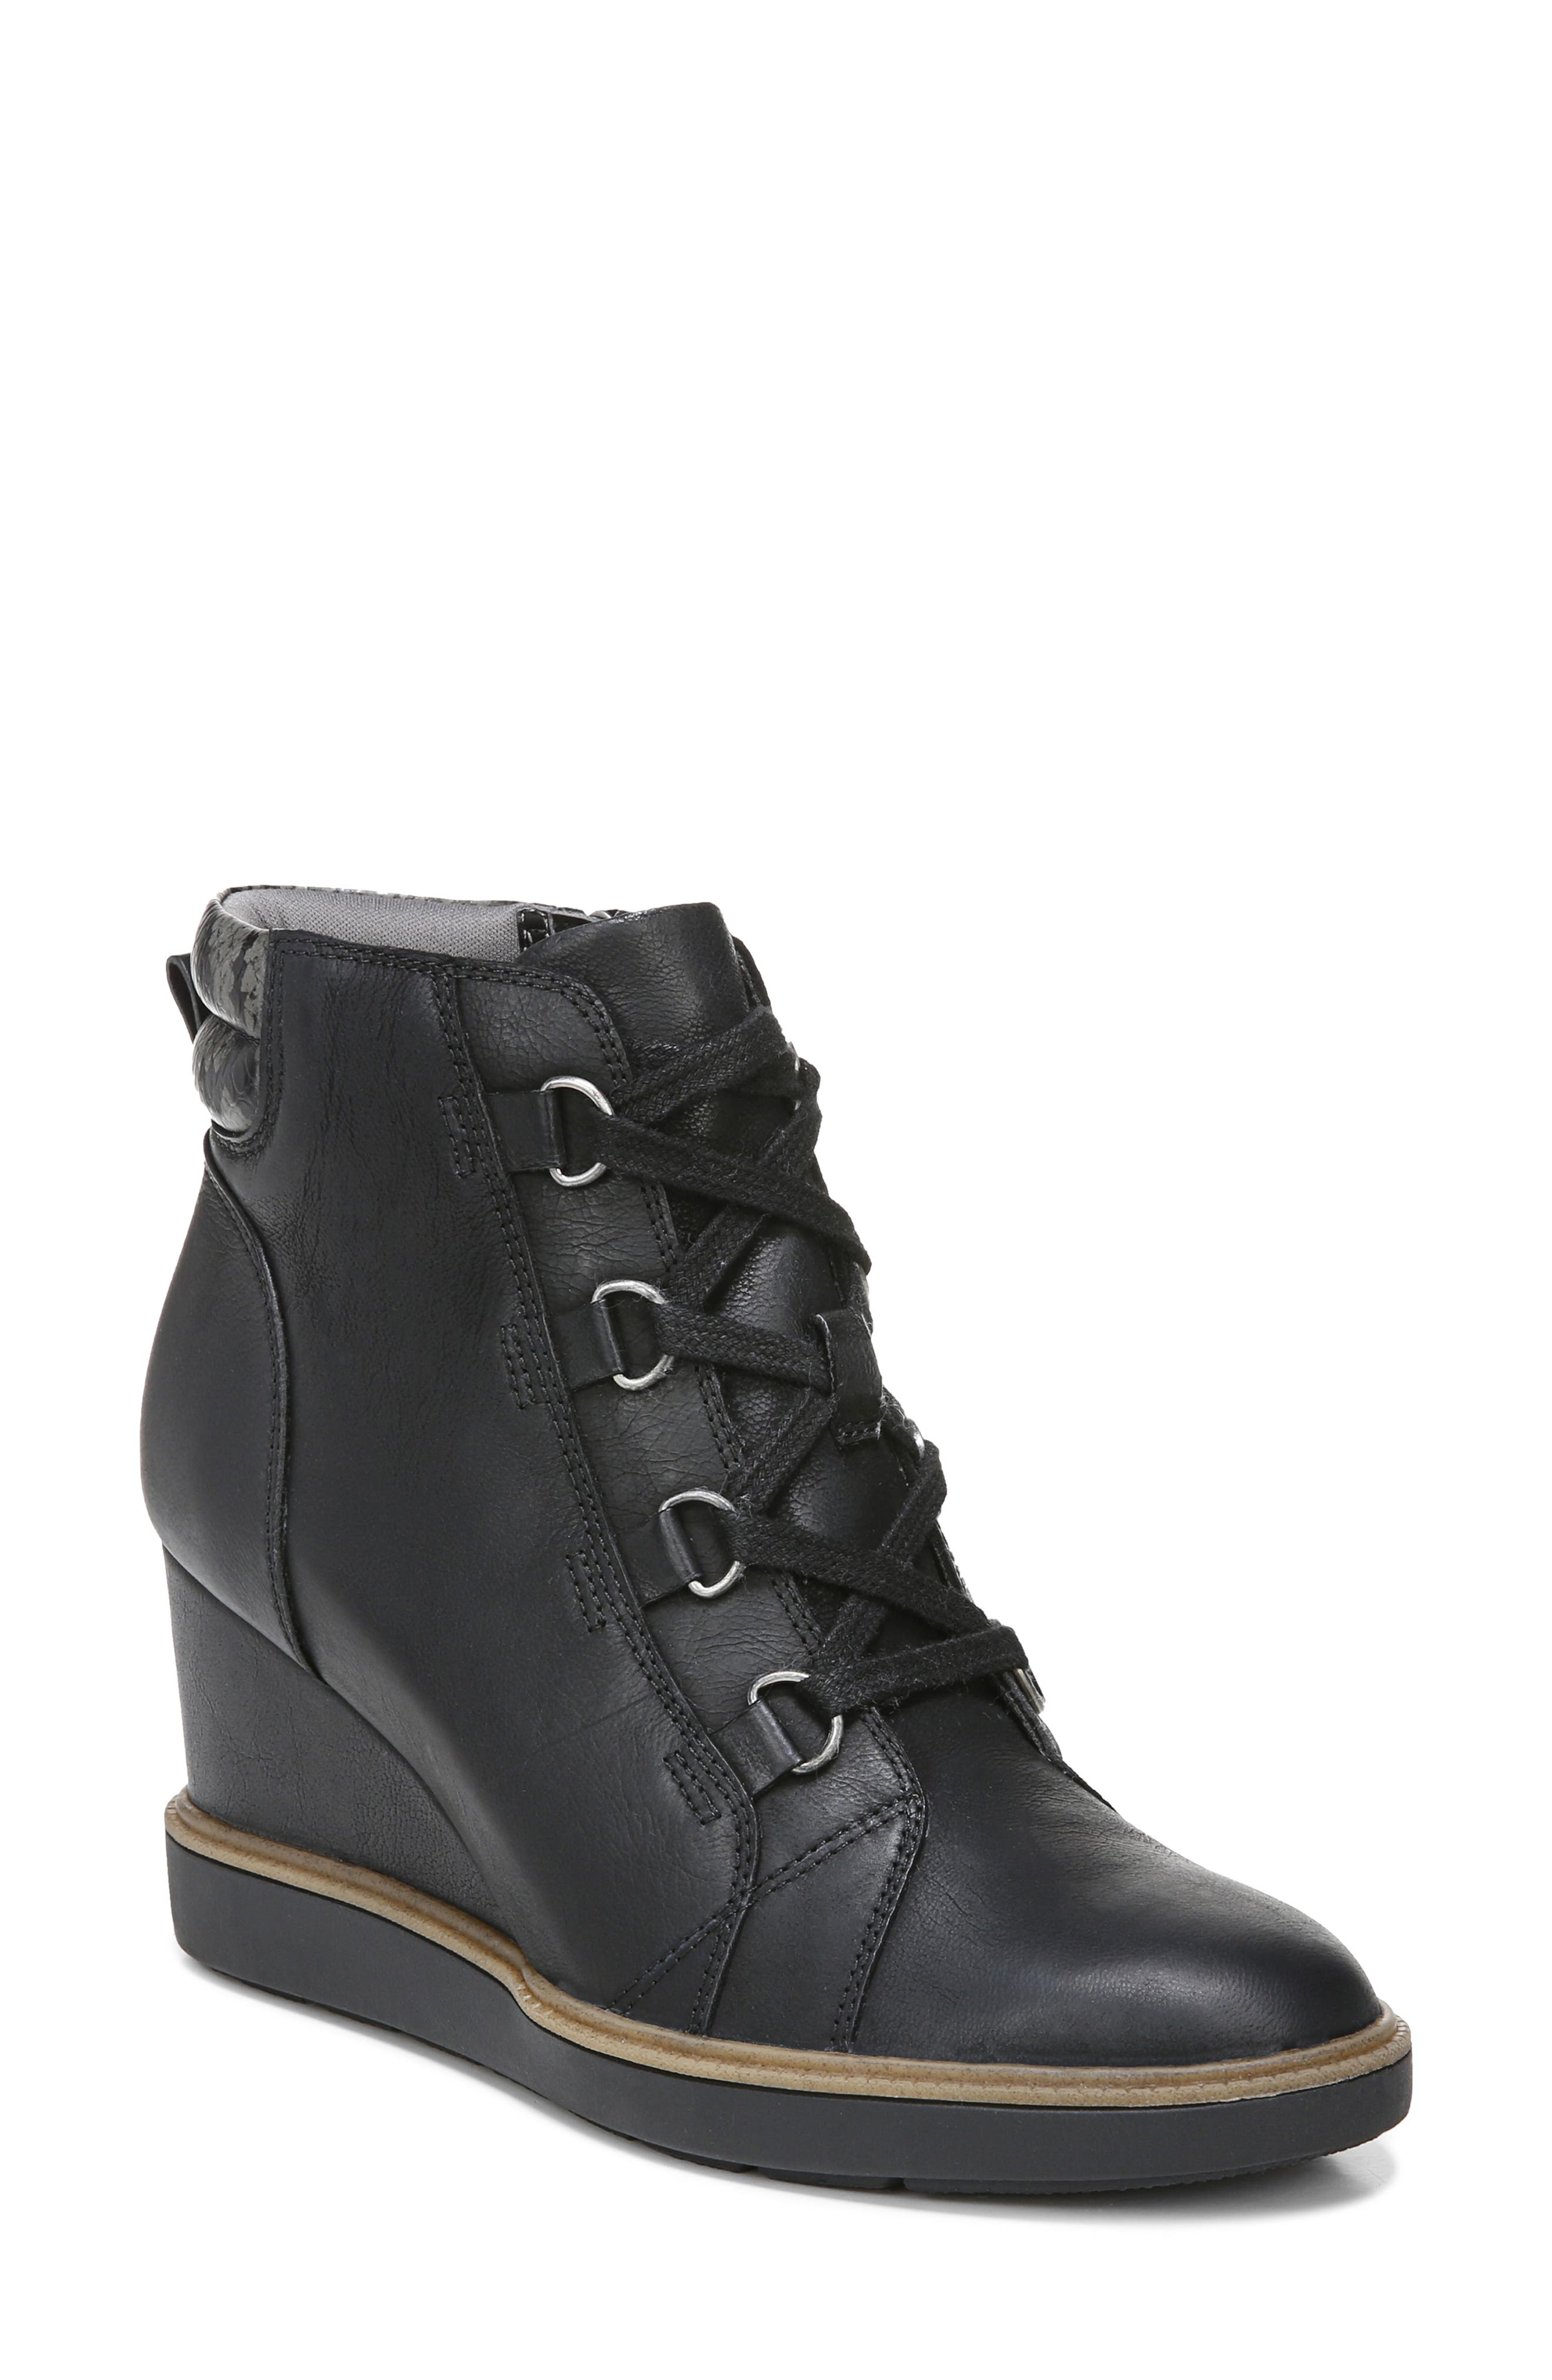 Just For Fun Wedge Bootie